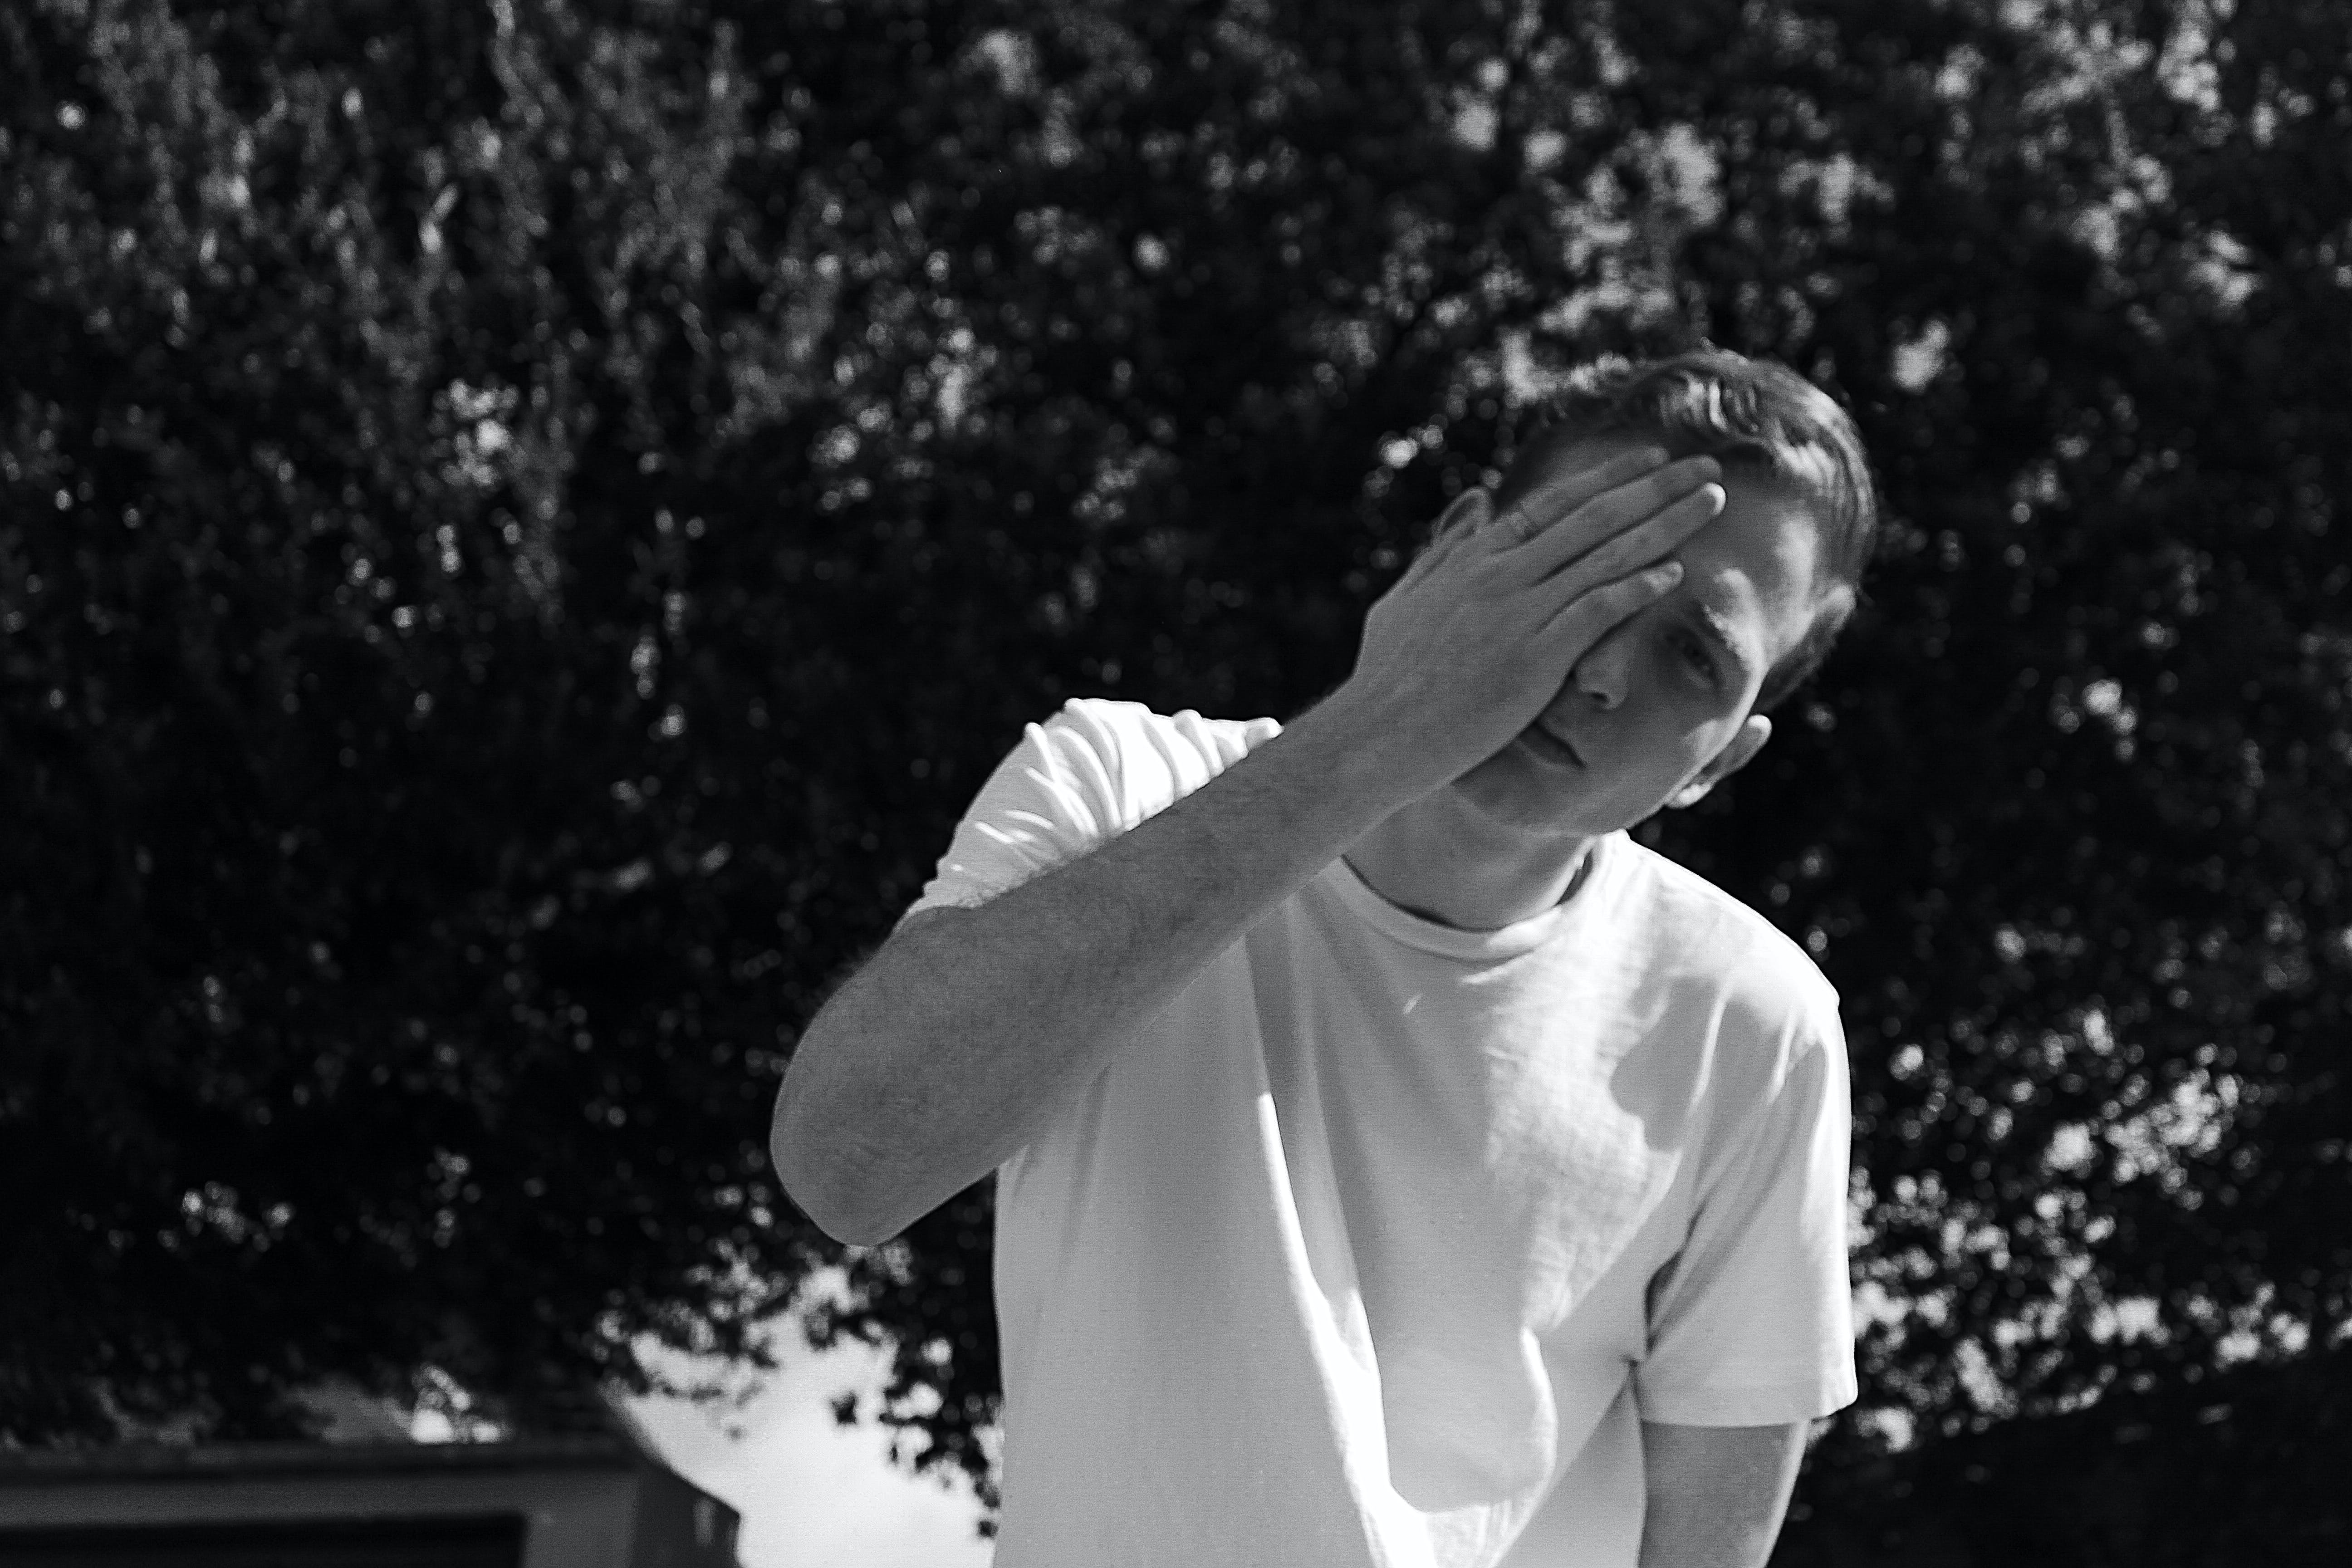 Grayscale Photo of Man Wearing White Crew-neck Shrit